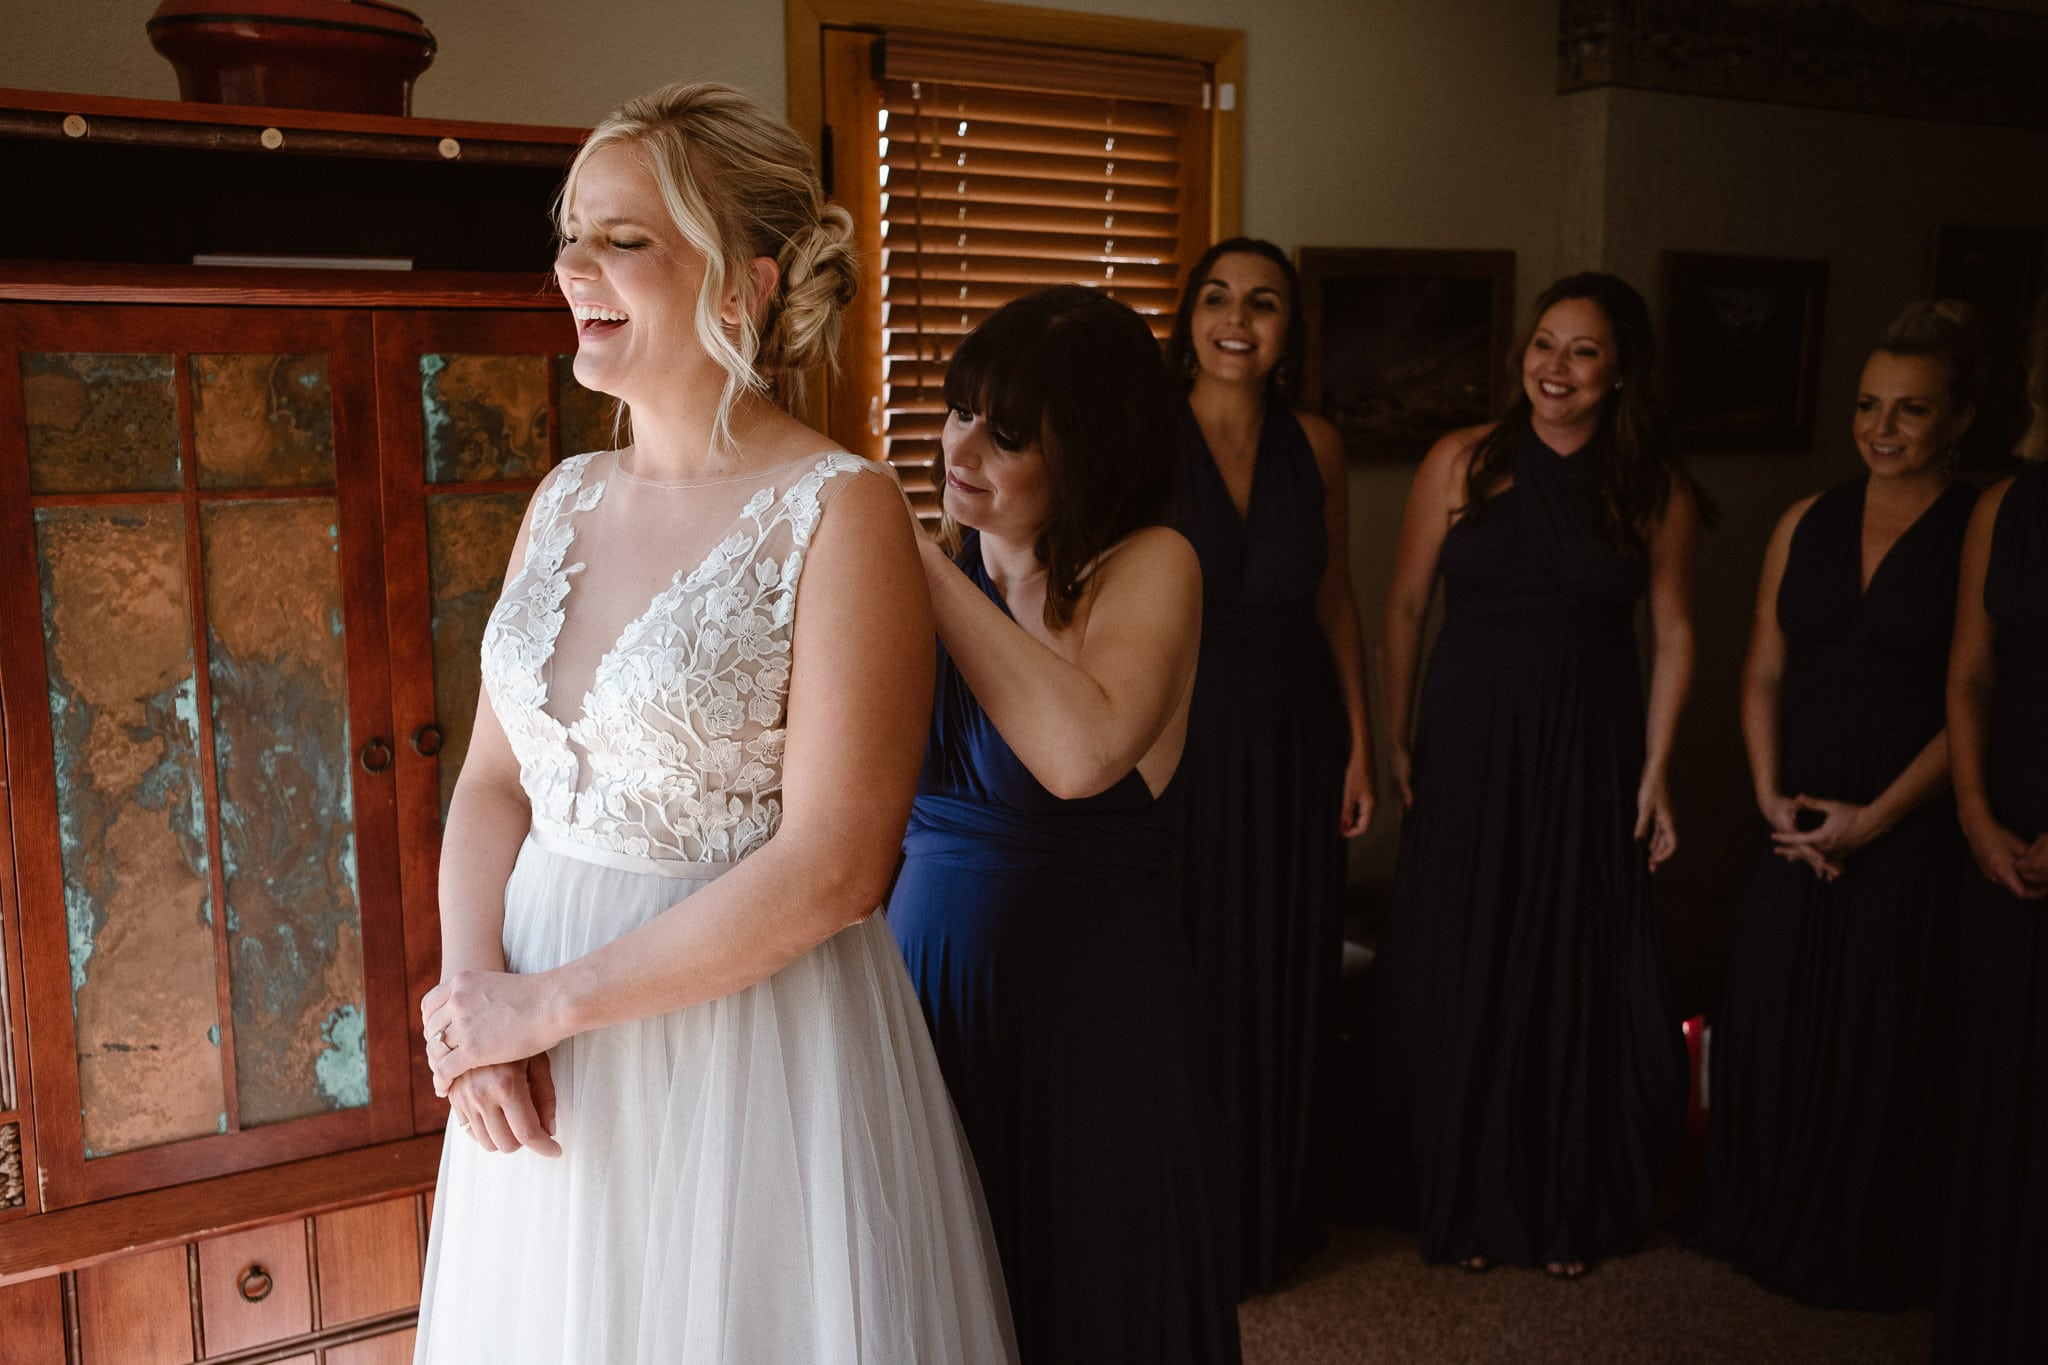 Steamboat Springs wedding photographer, La Joya Dulce wedding, Colorado ranch wedding venues, bride putting on wedding dress, bridesmaids helping bride, getting ready photos